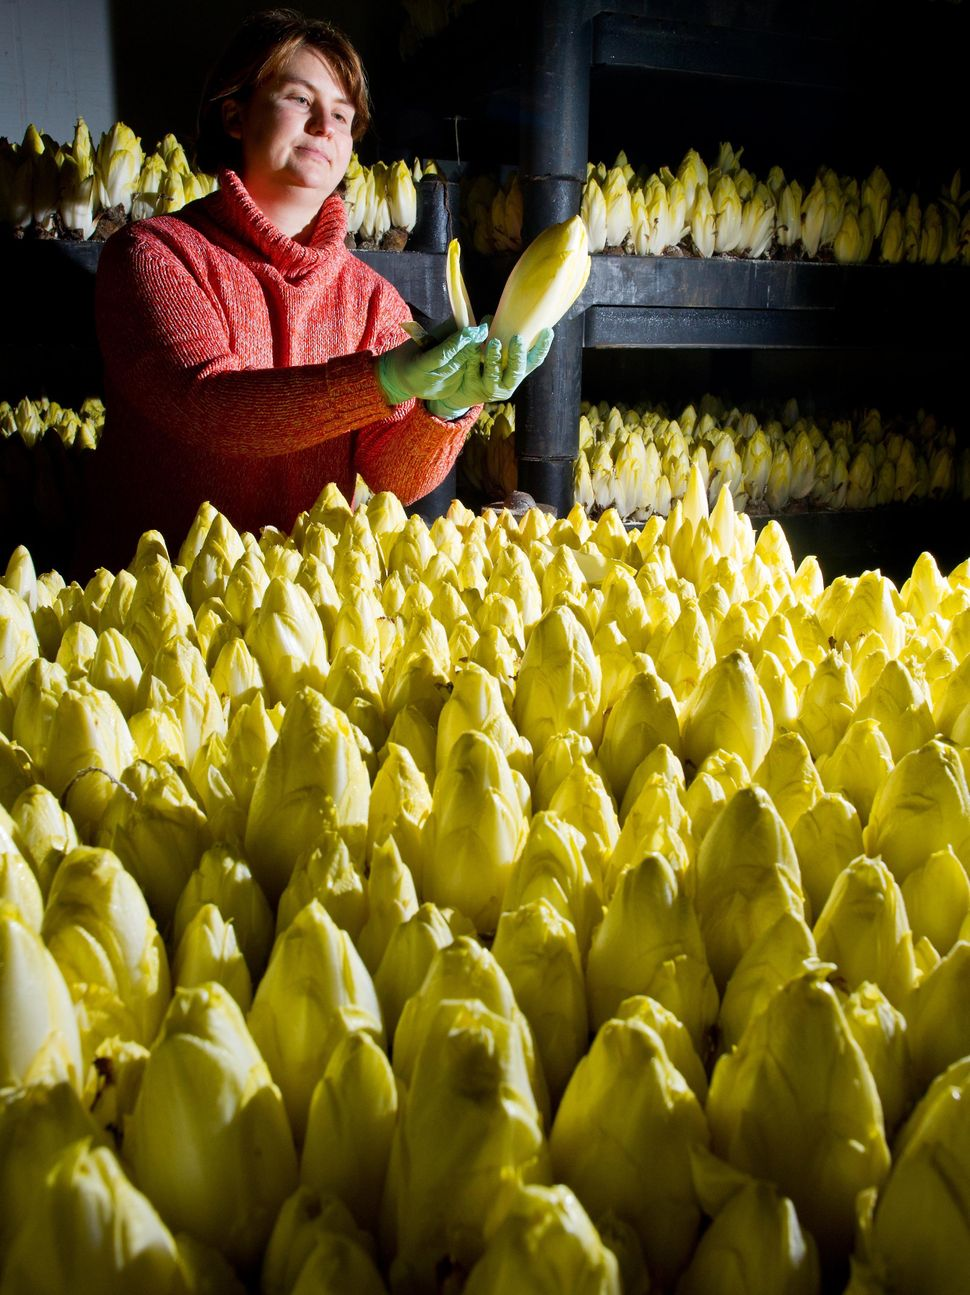 Mandy Diehr, employee of the Landgut Pretschen farm, checks the maturity of chicory plants on Jan. 2, 2014 in Pretschen, east